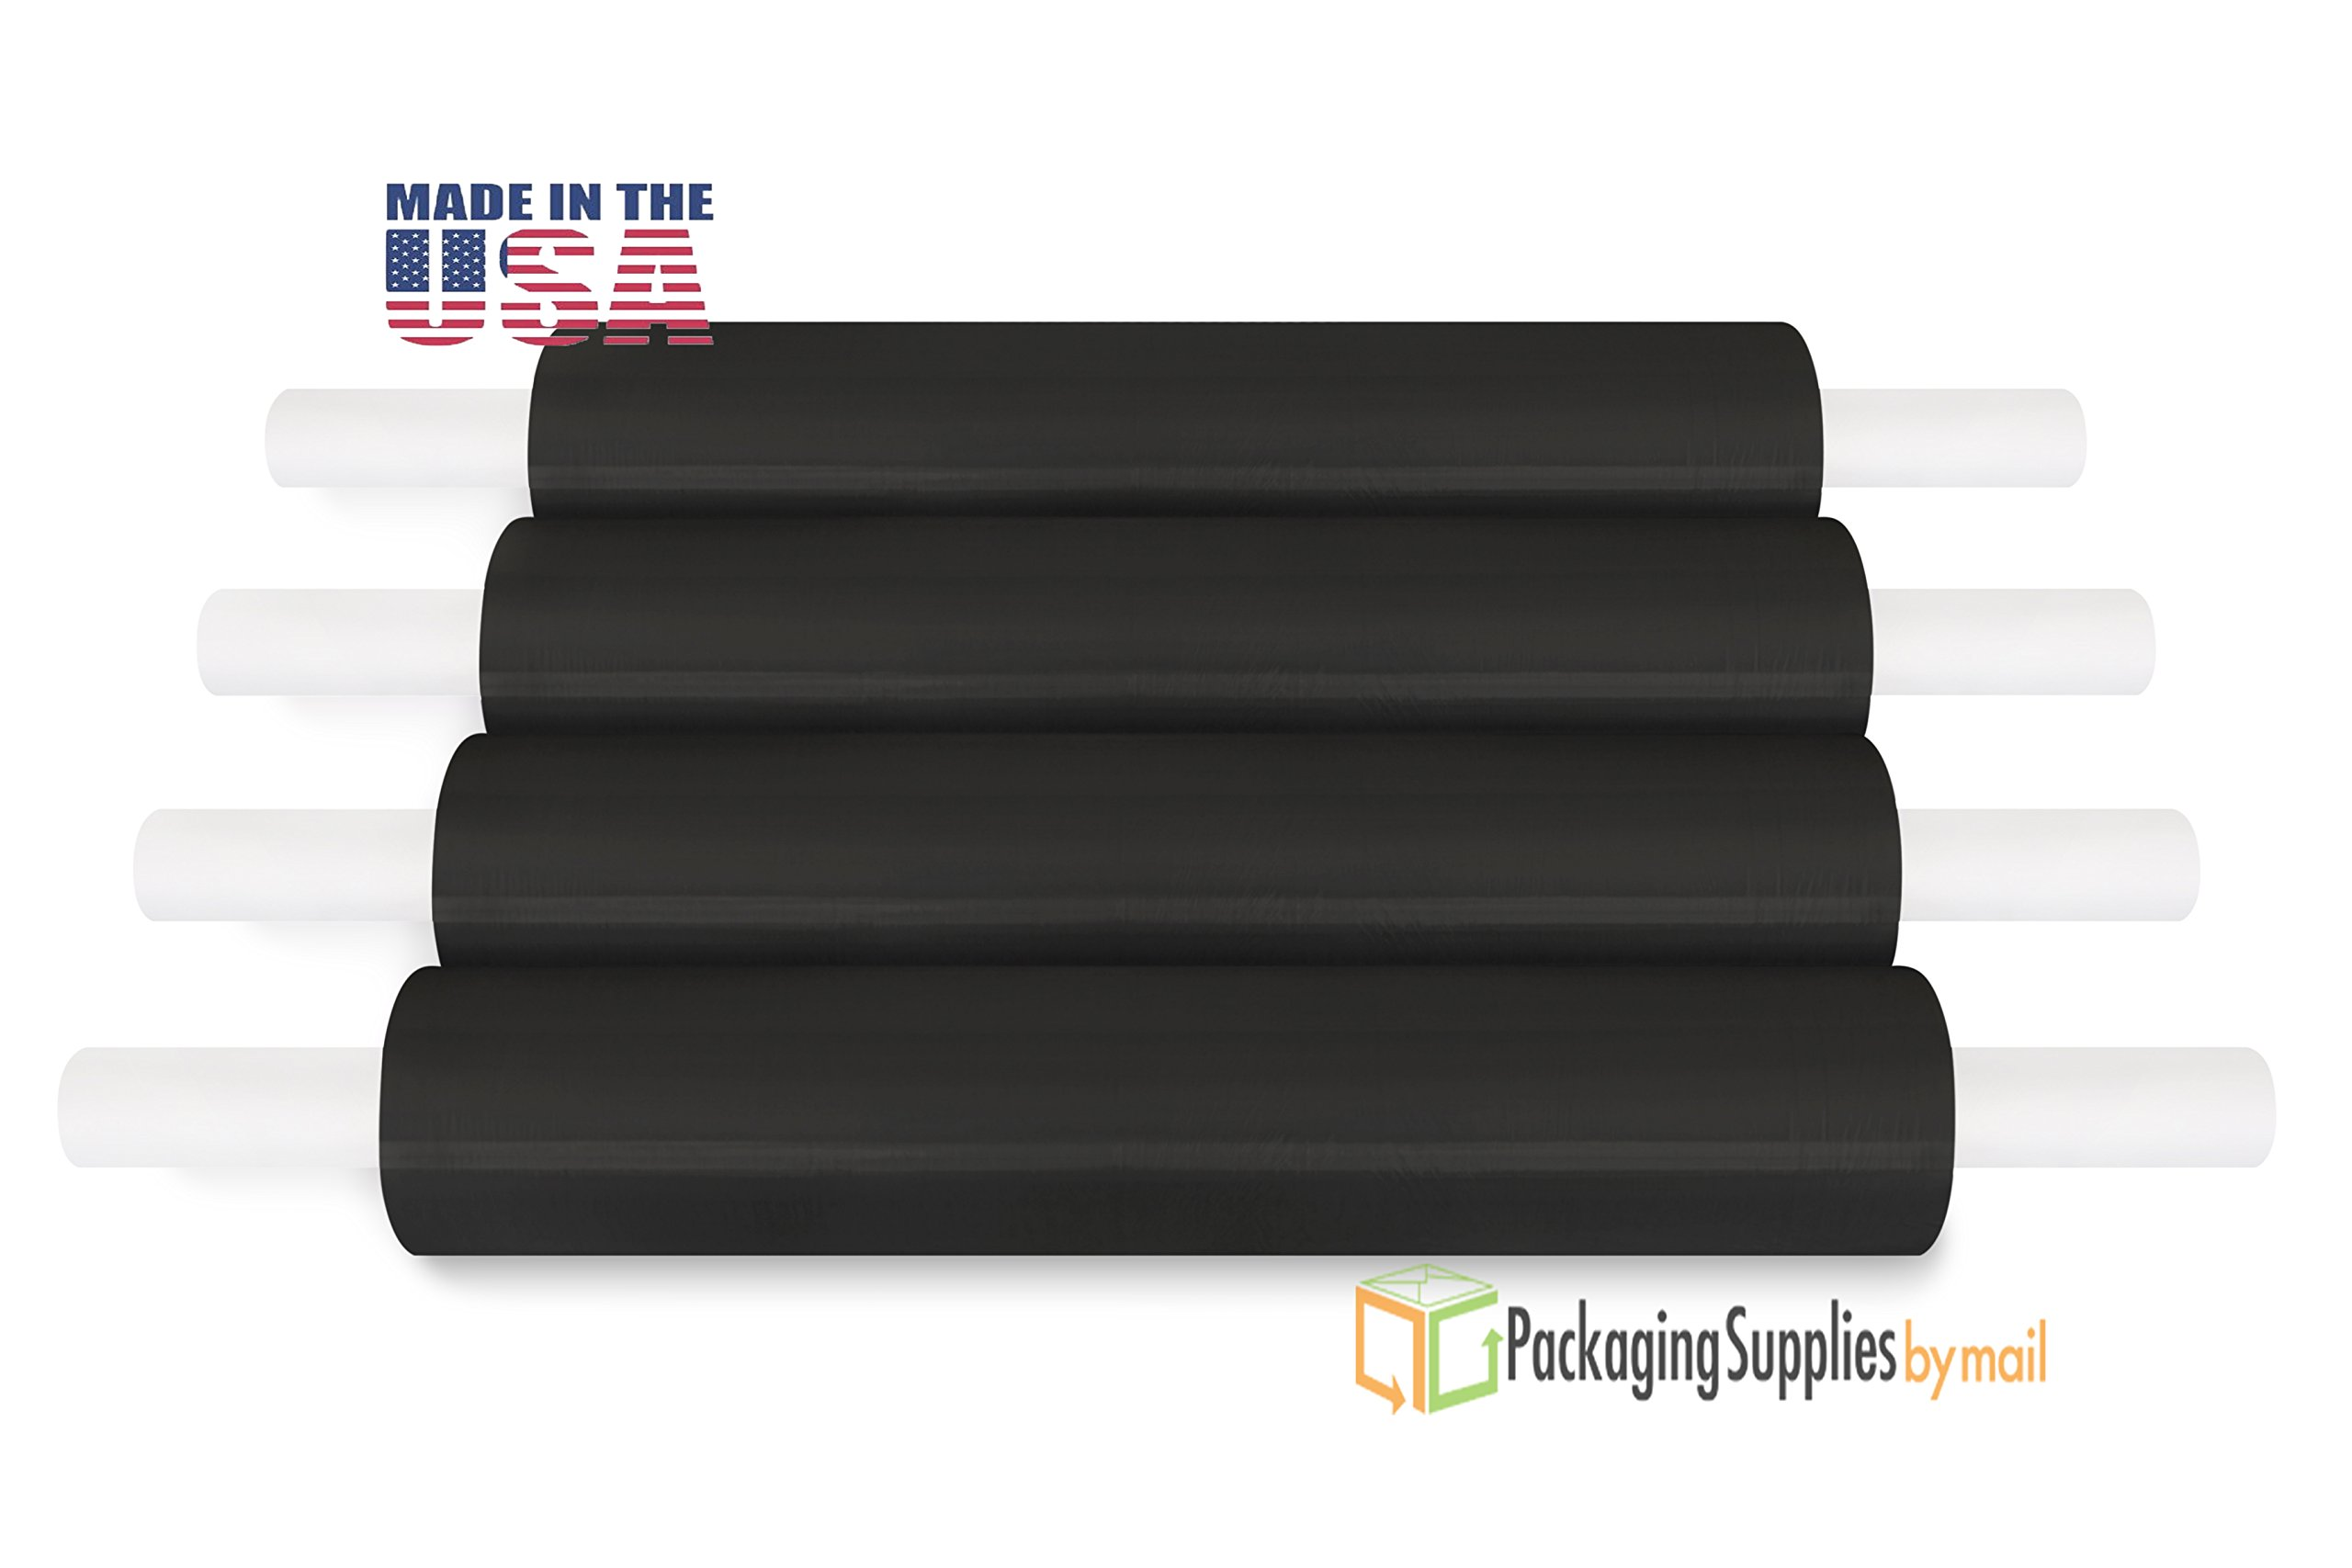 20 inch Black Color Stretch Film Pipe Wrap with Preattached Handles 1000 Feet